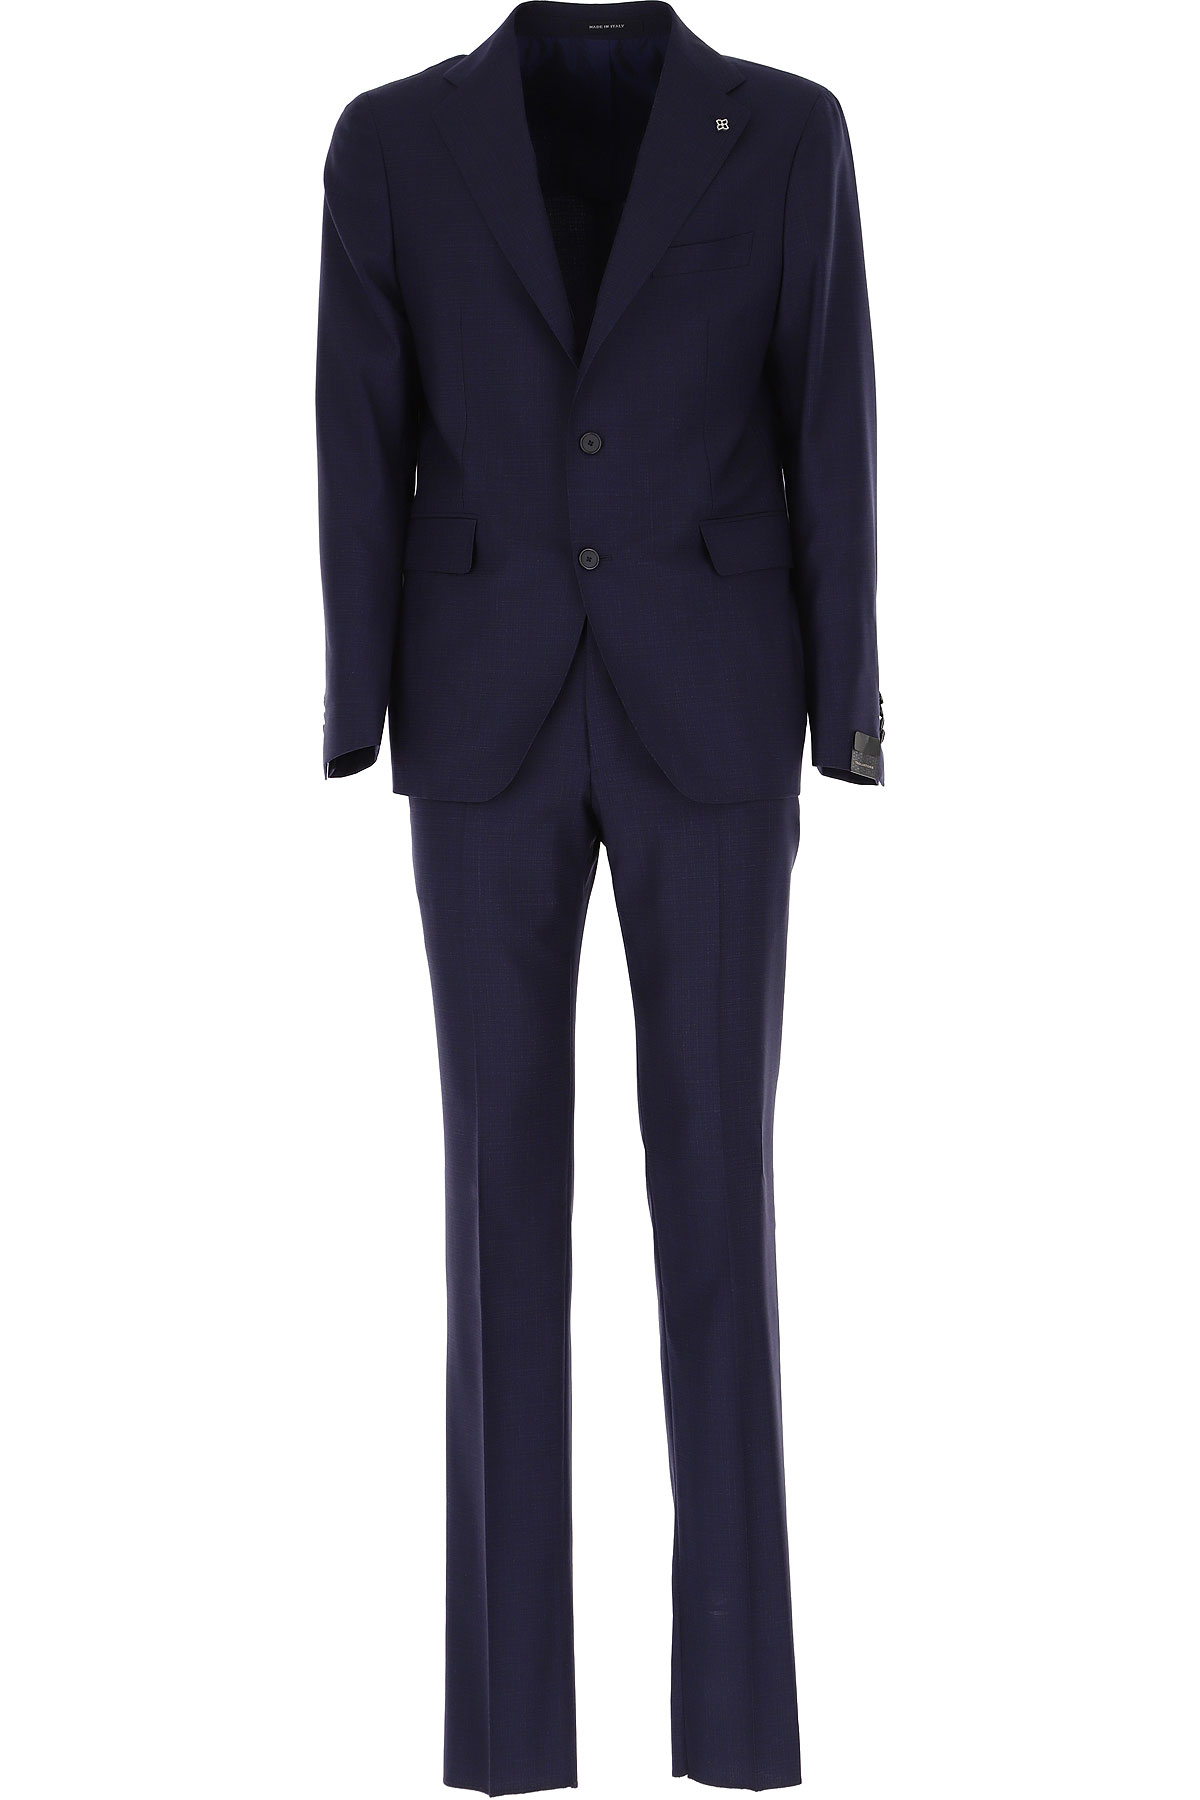 Tagliatore Men's Suit On Sale, Navy Blue, Virgin wool, 2019, L M XL XXL